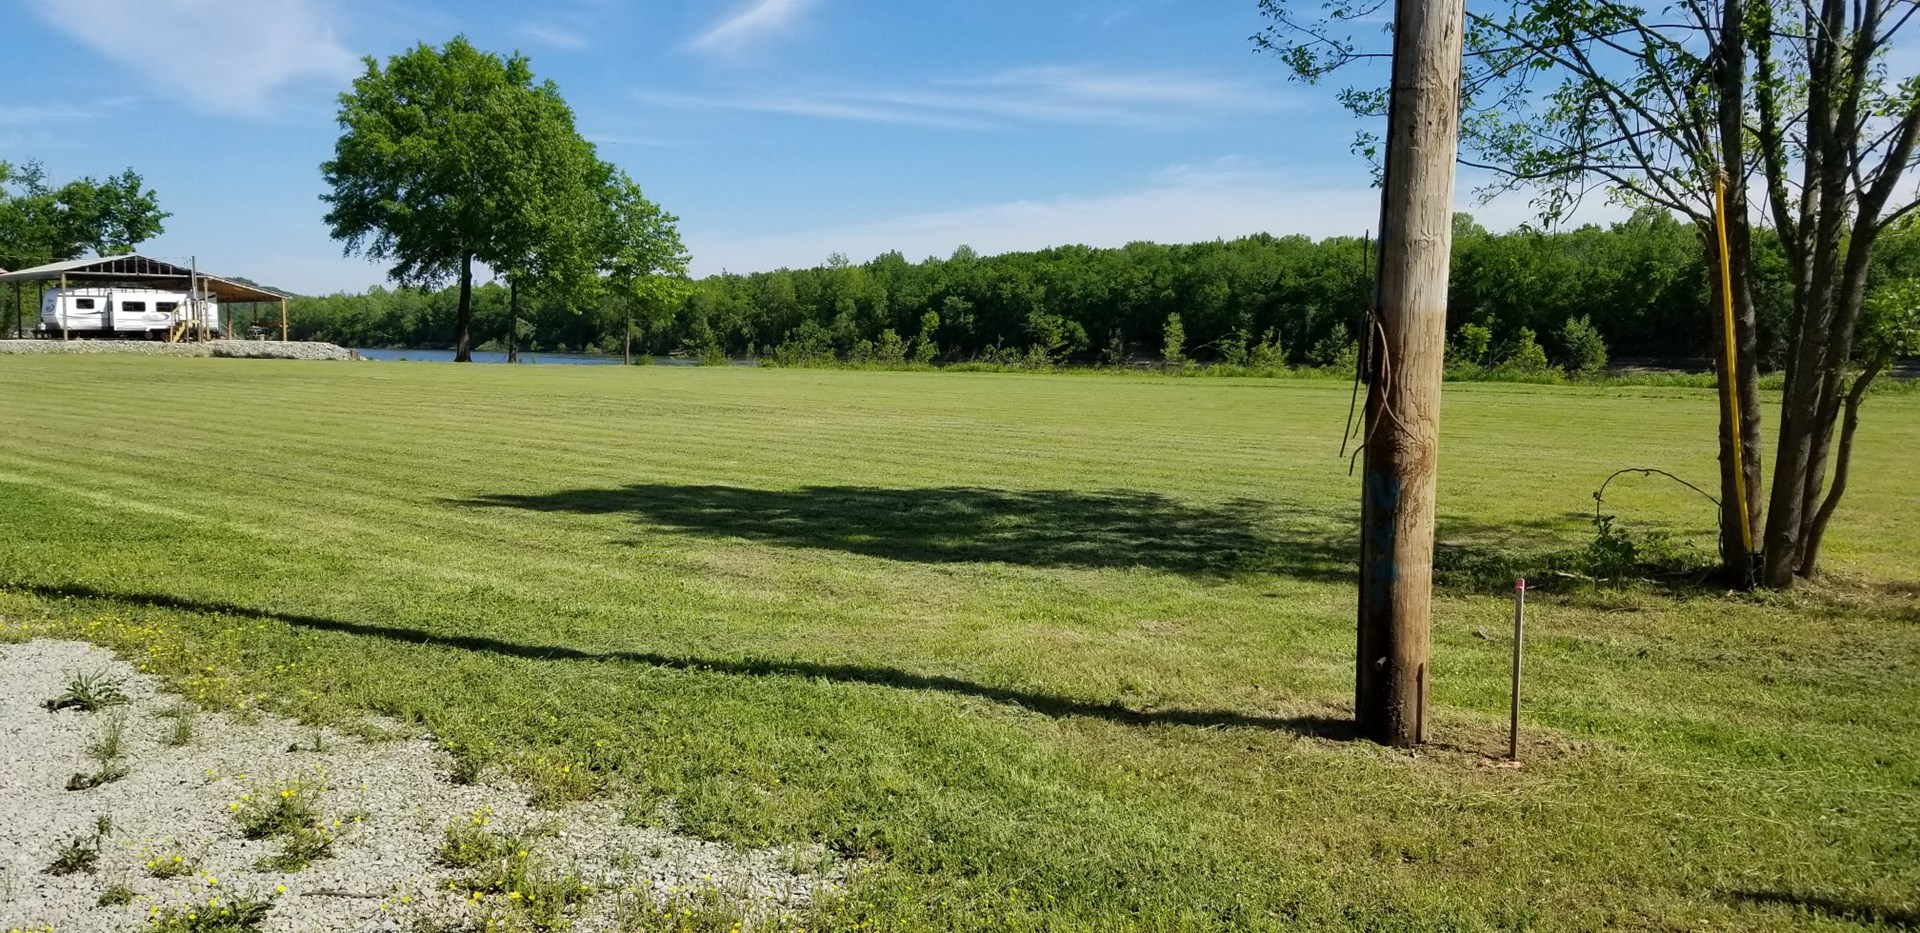 3 TENNESSEE RIVERFRONT LOTS FOR SALE BETWEEN CLIFTON LINDEN